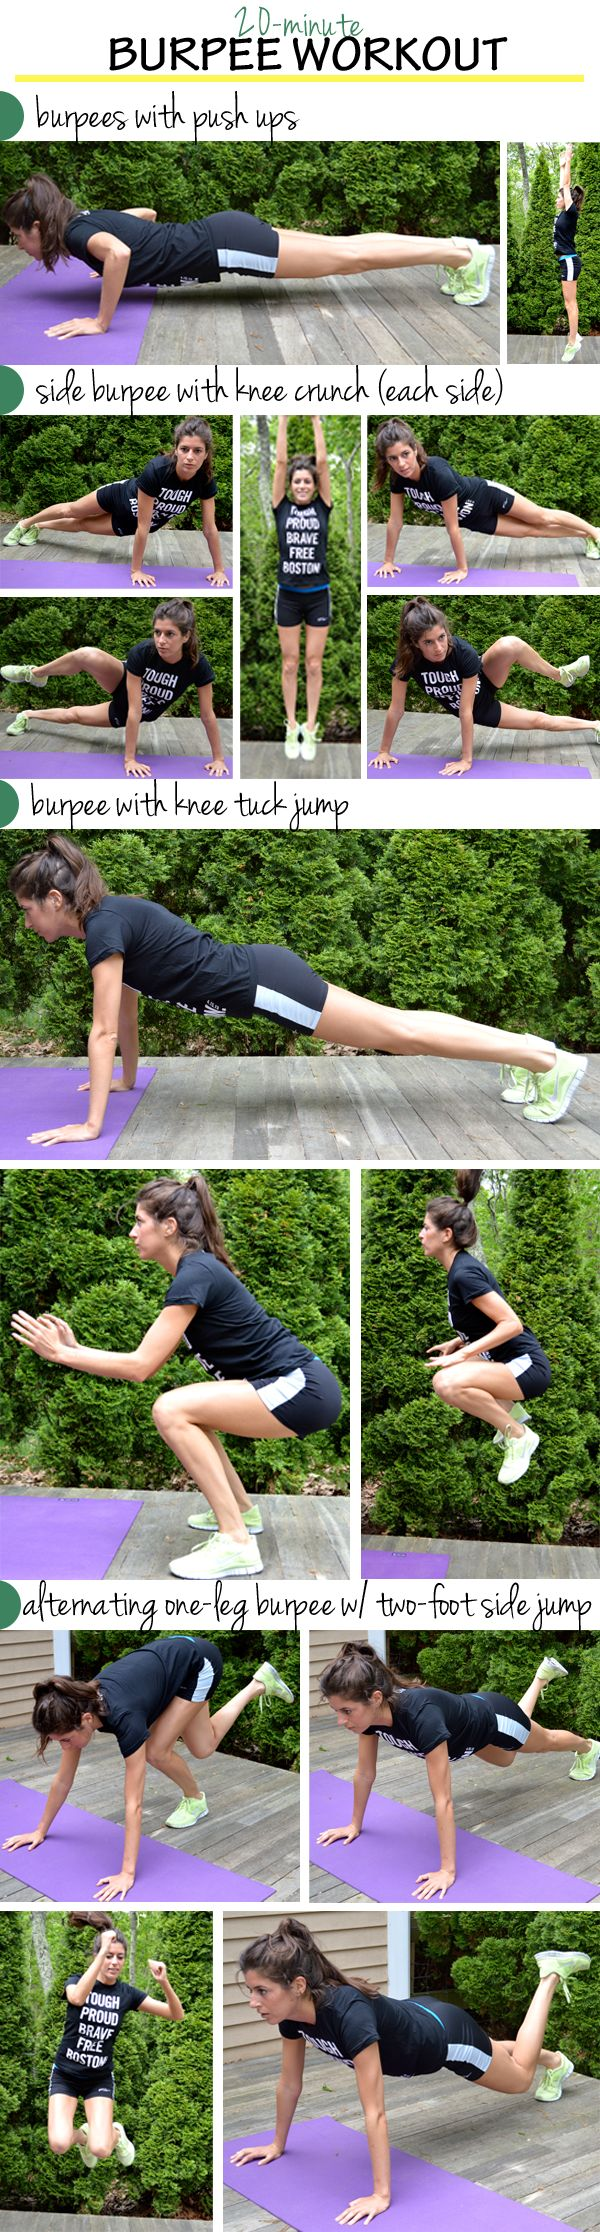 The question is... will i actually do this one?...DIY Exercise fitness motivation exercise diy exercise healthy living home exercise diy exercise routine exercise plan